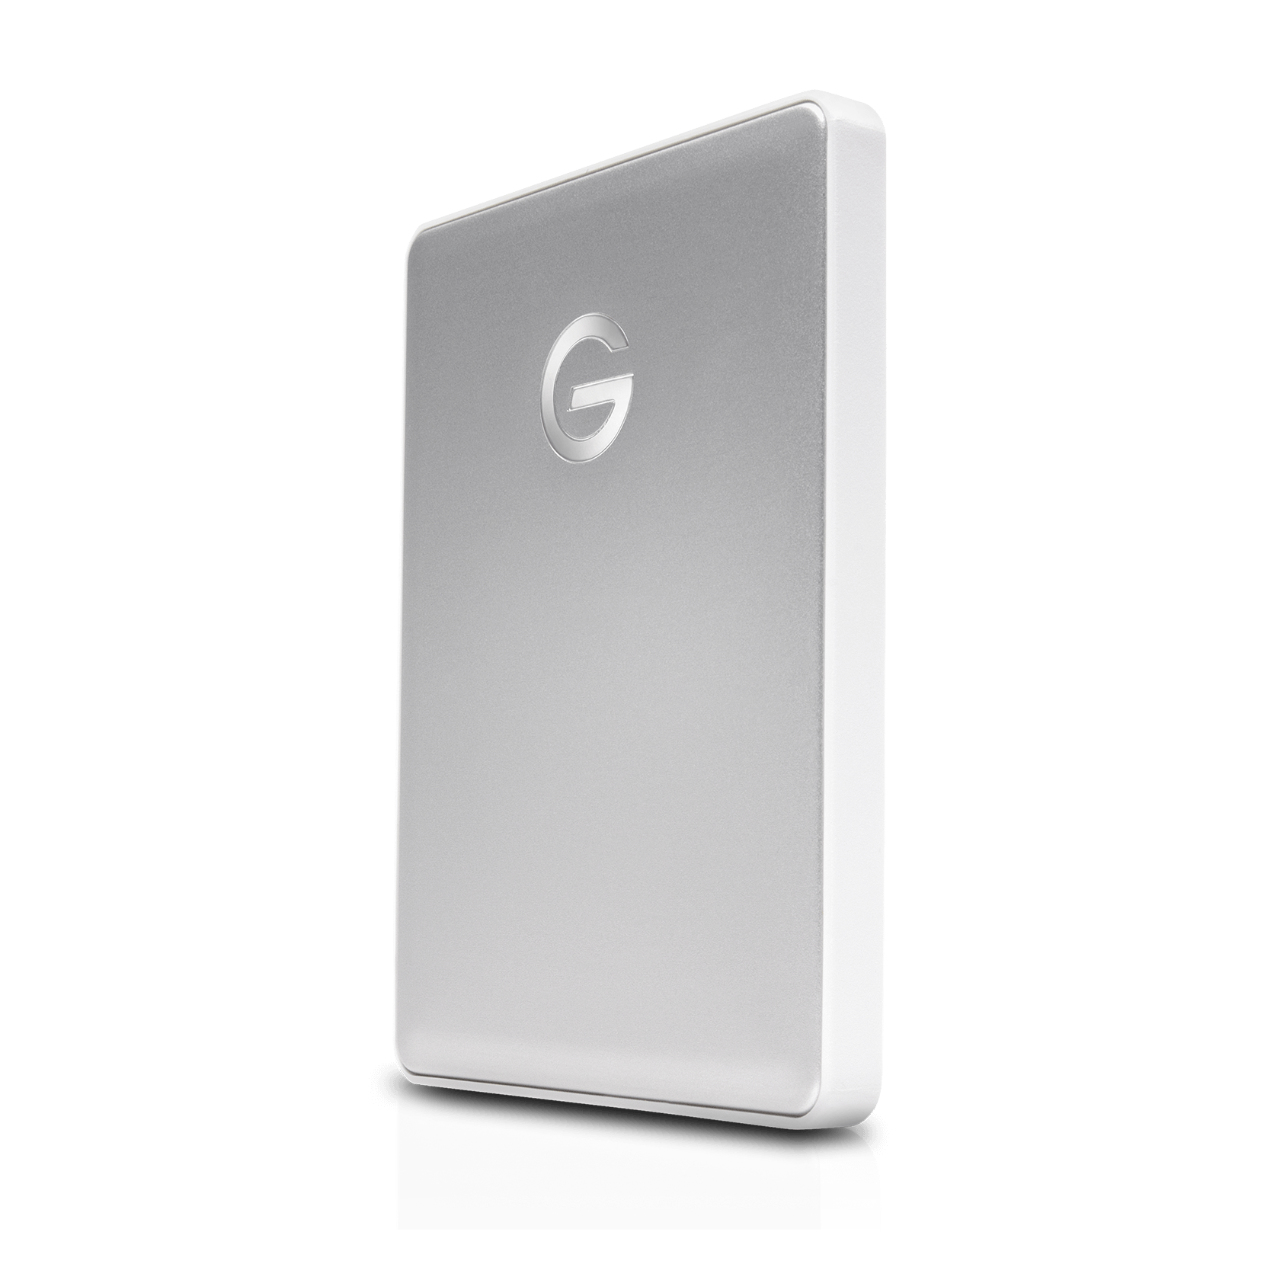 G-Technology G-DRIVE Mobile USB-C disco duro externo 1000 GB Plata